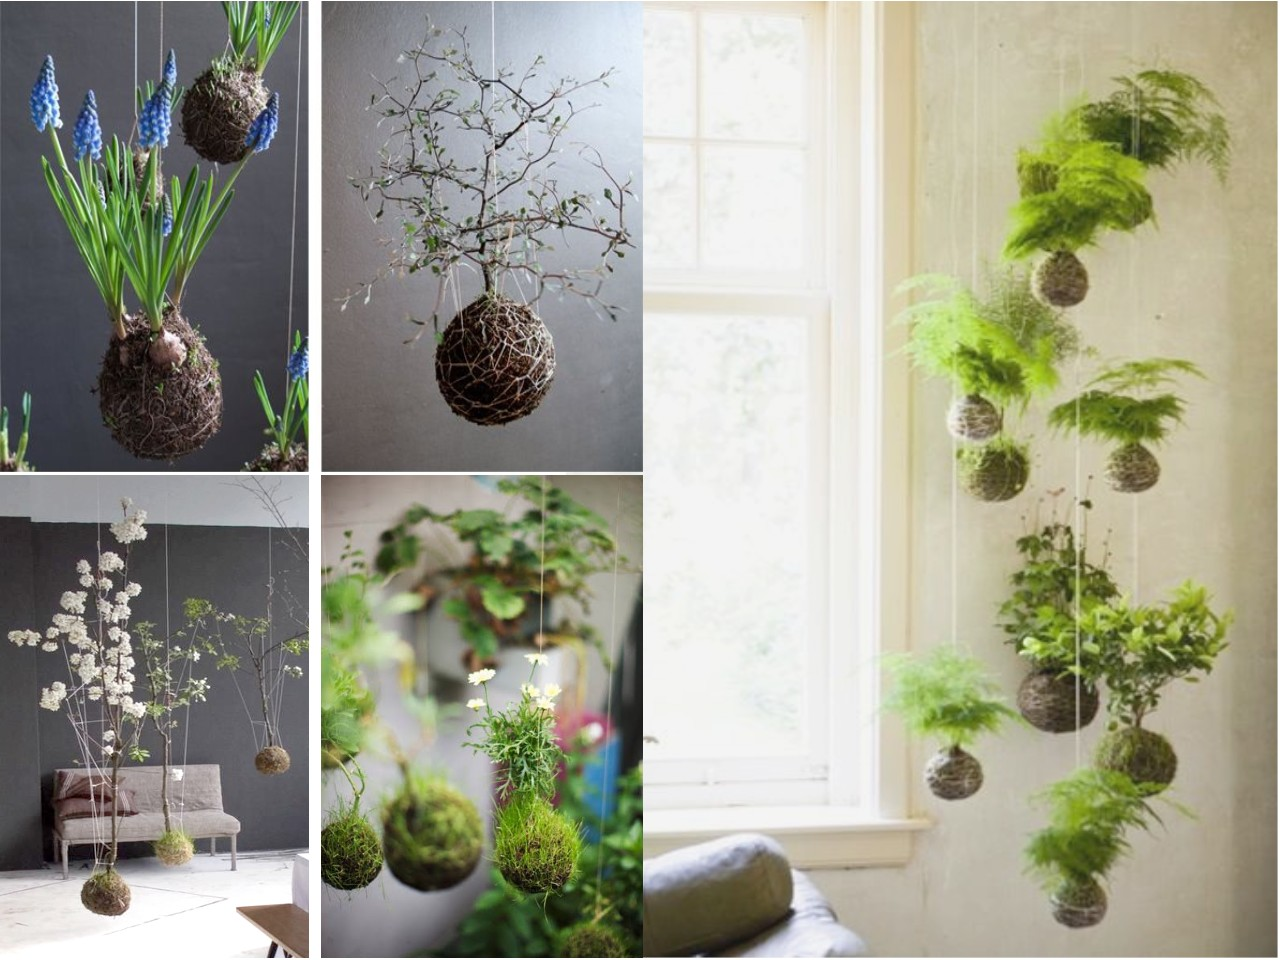 10 ideas de decoraci n con plantas colgantes for Decoracion de patios pequenos con plantas